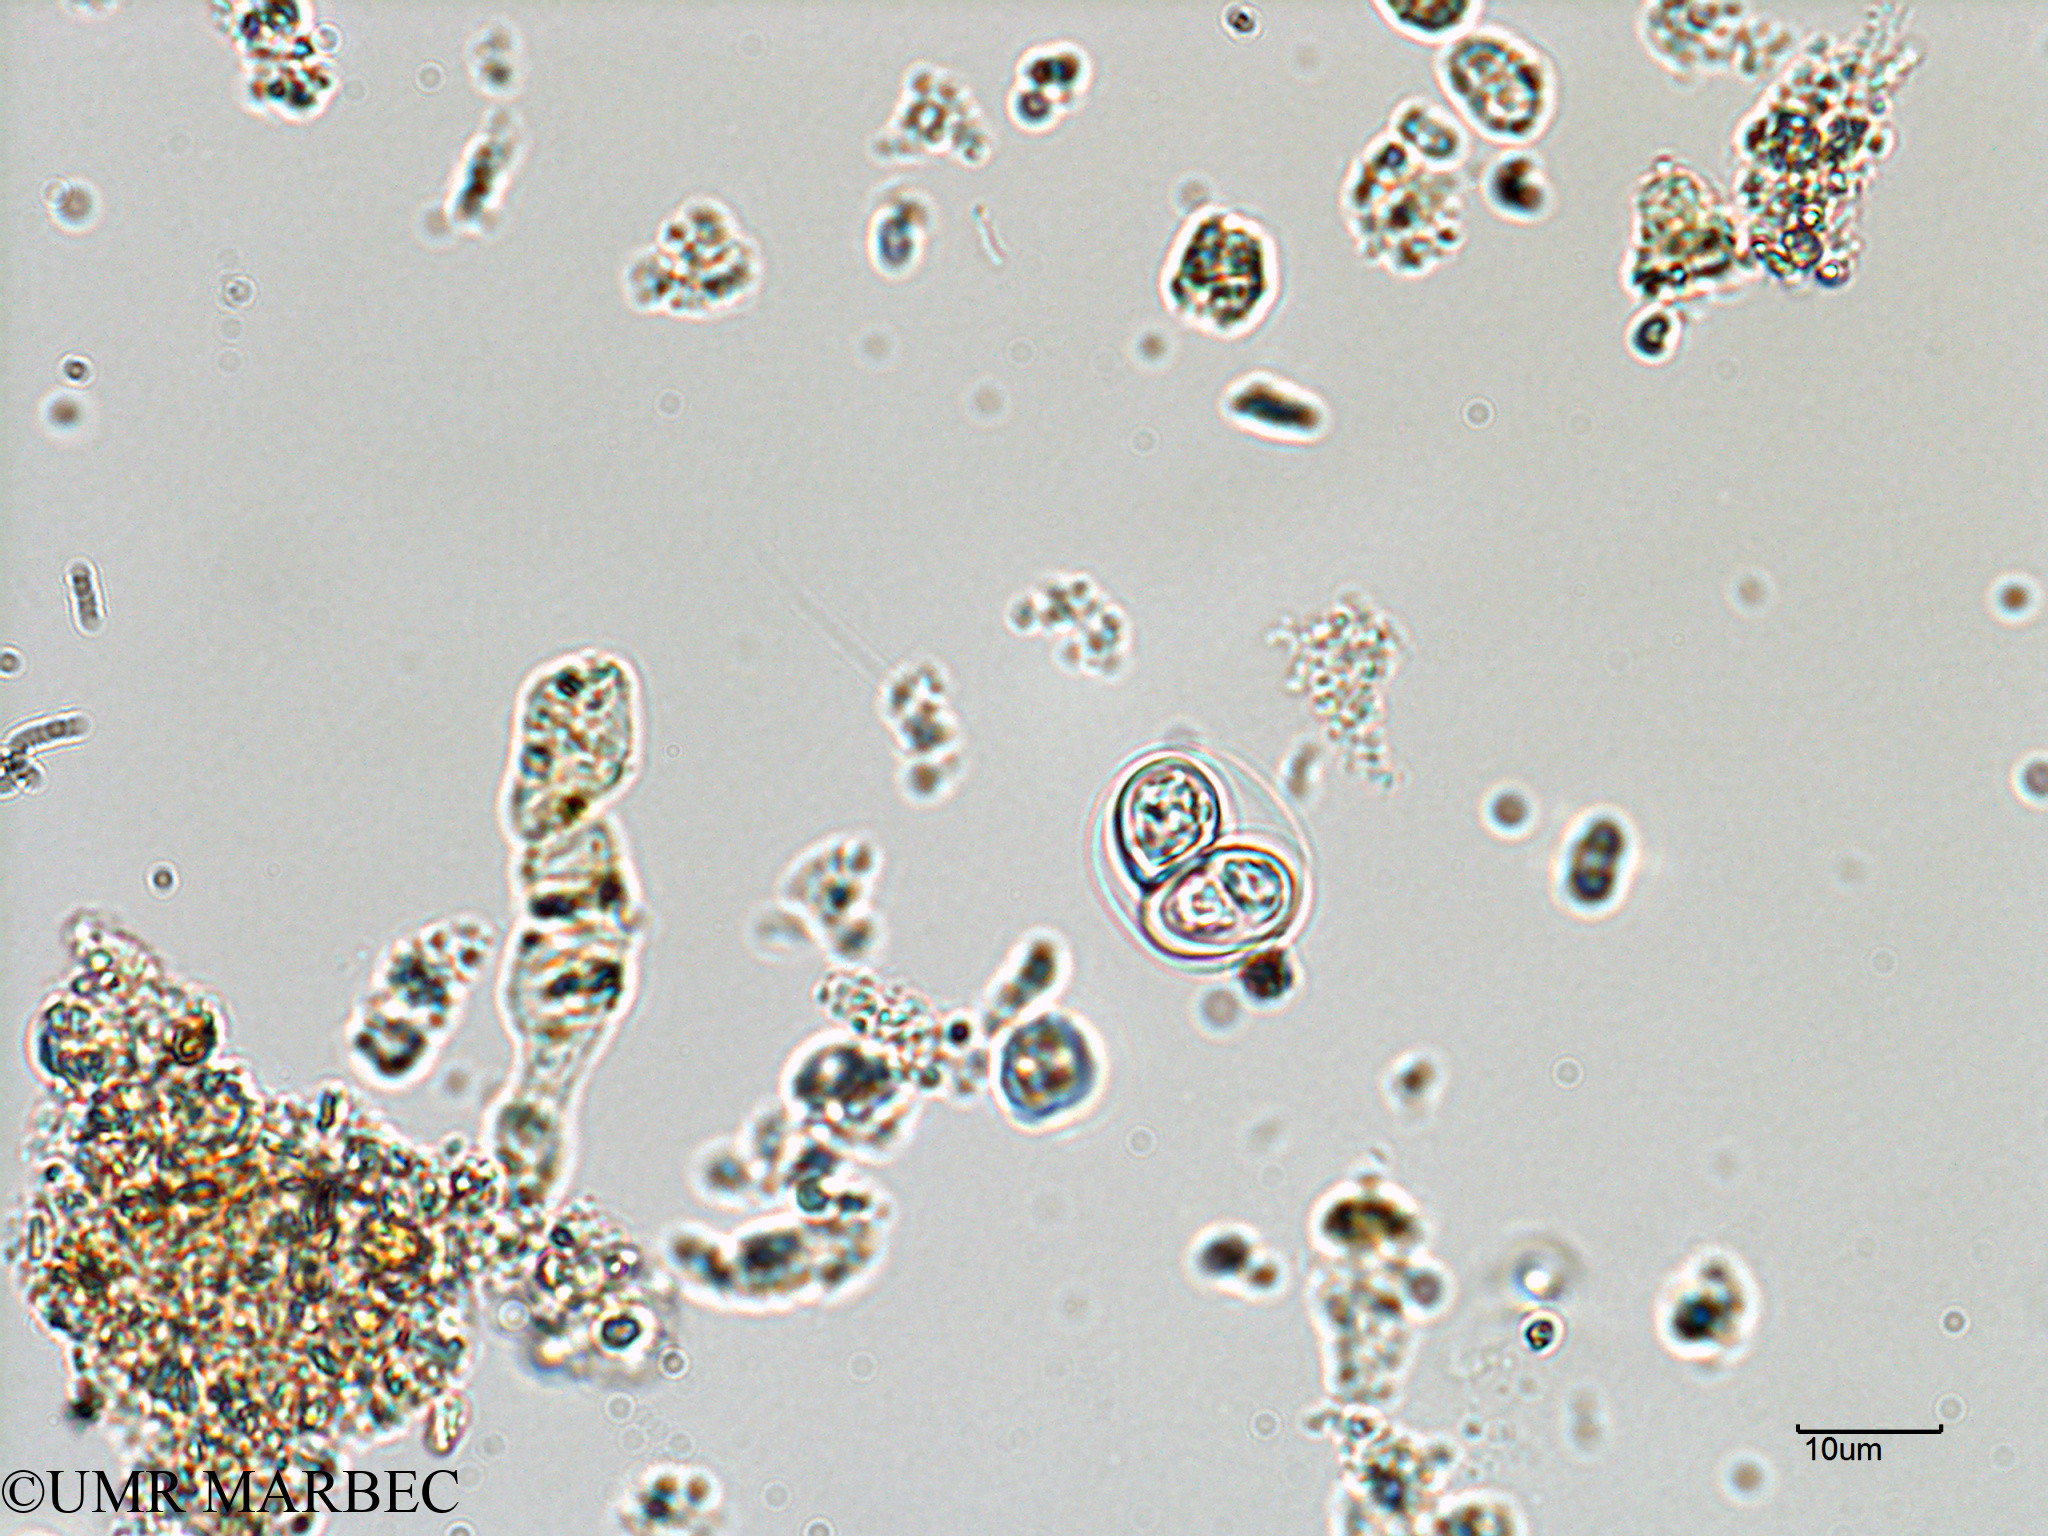 phyto/Bizerte/bizerte_lagoon/RISCO February 2015/Oocystis sp (ancien Lagune_T1-A_oocystis).tif(copy).jpg